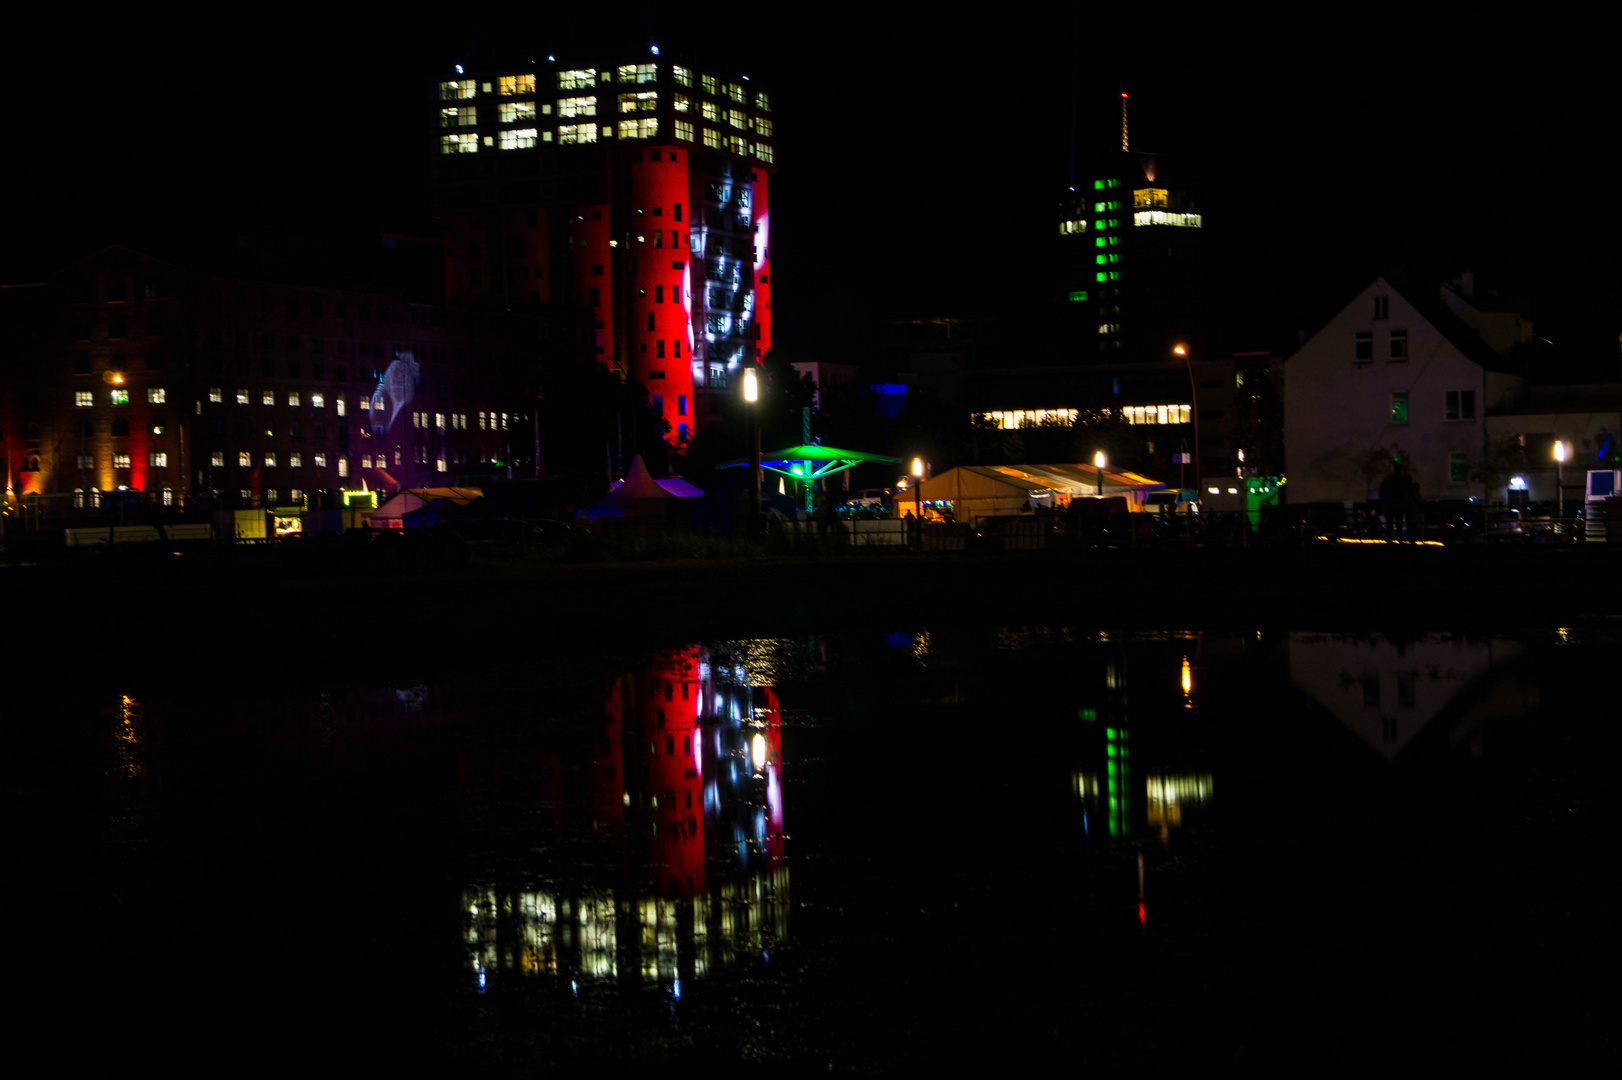 Night of the lights 3 - Hamburg